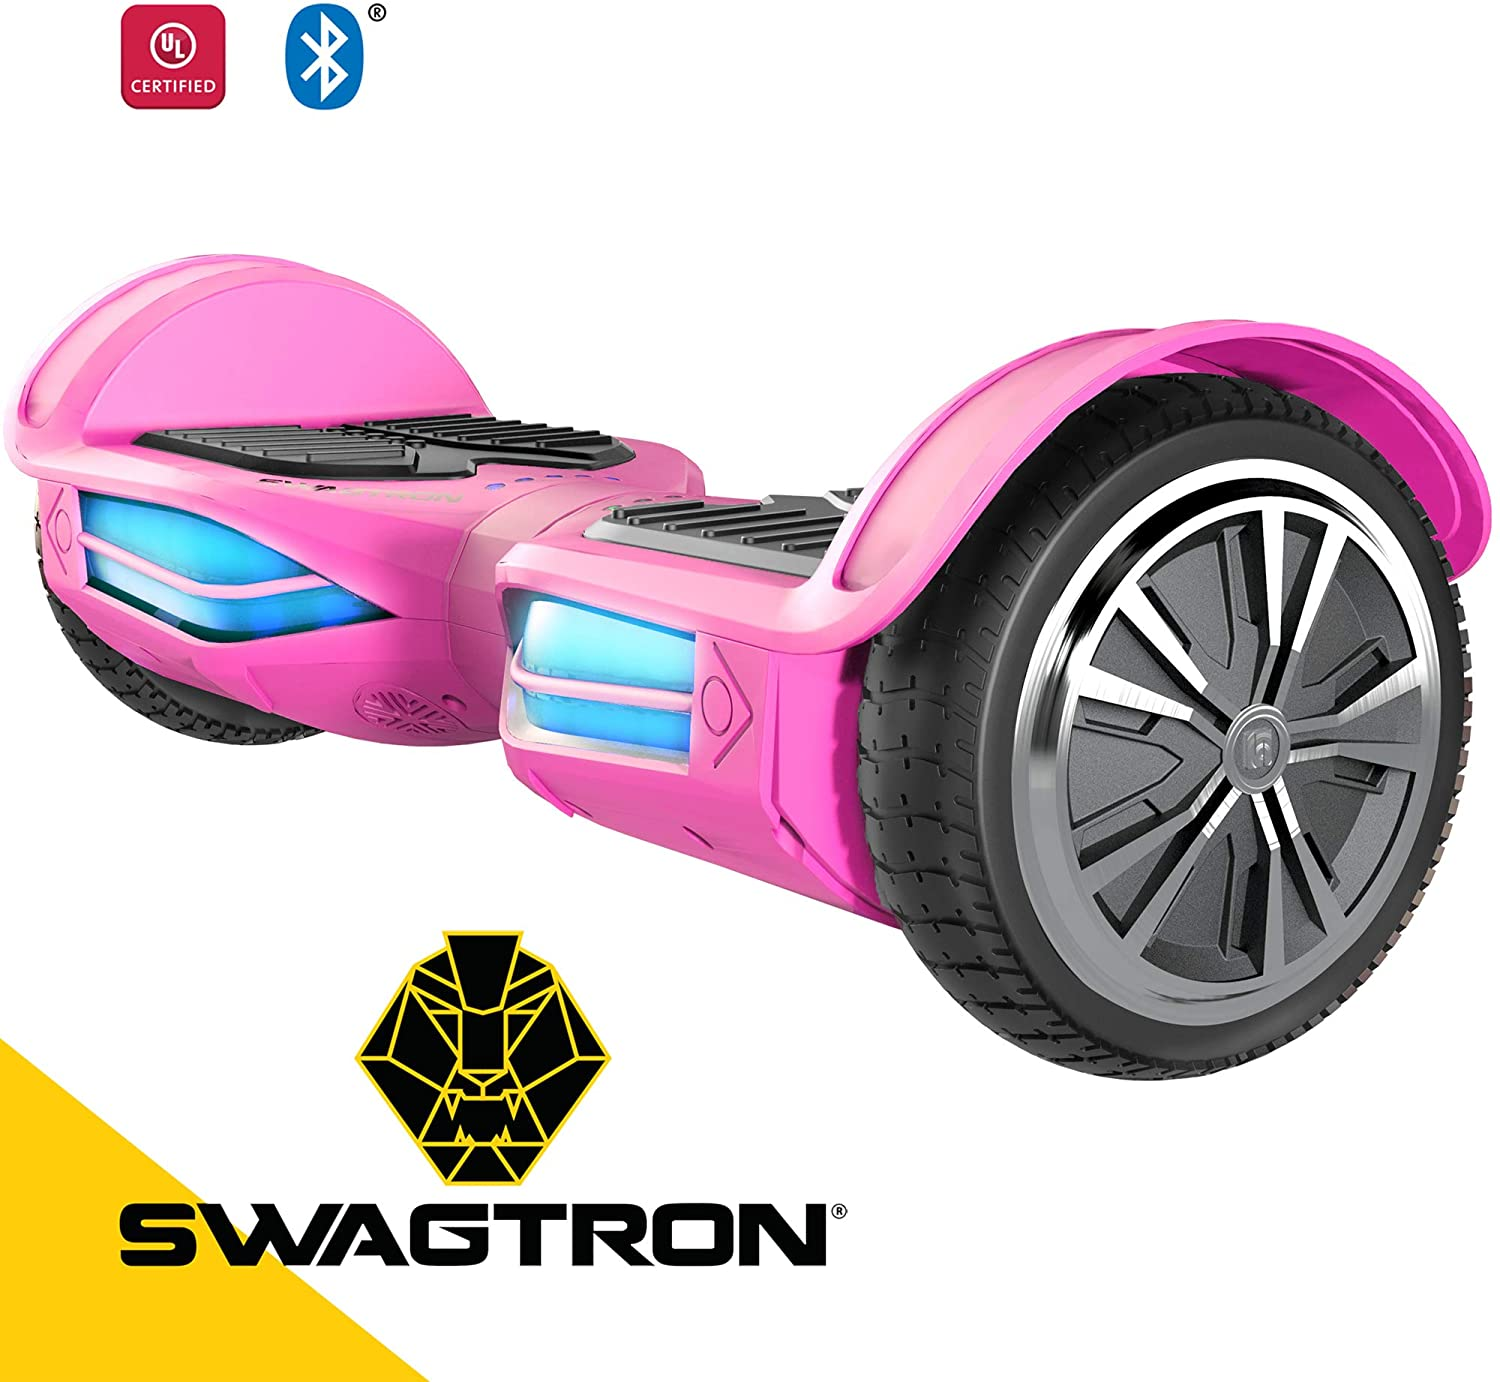 Best Mini Hoverboard For Kids, Best Mini Hoverboard For Kids in 2021